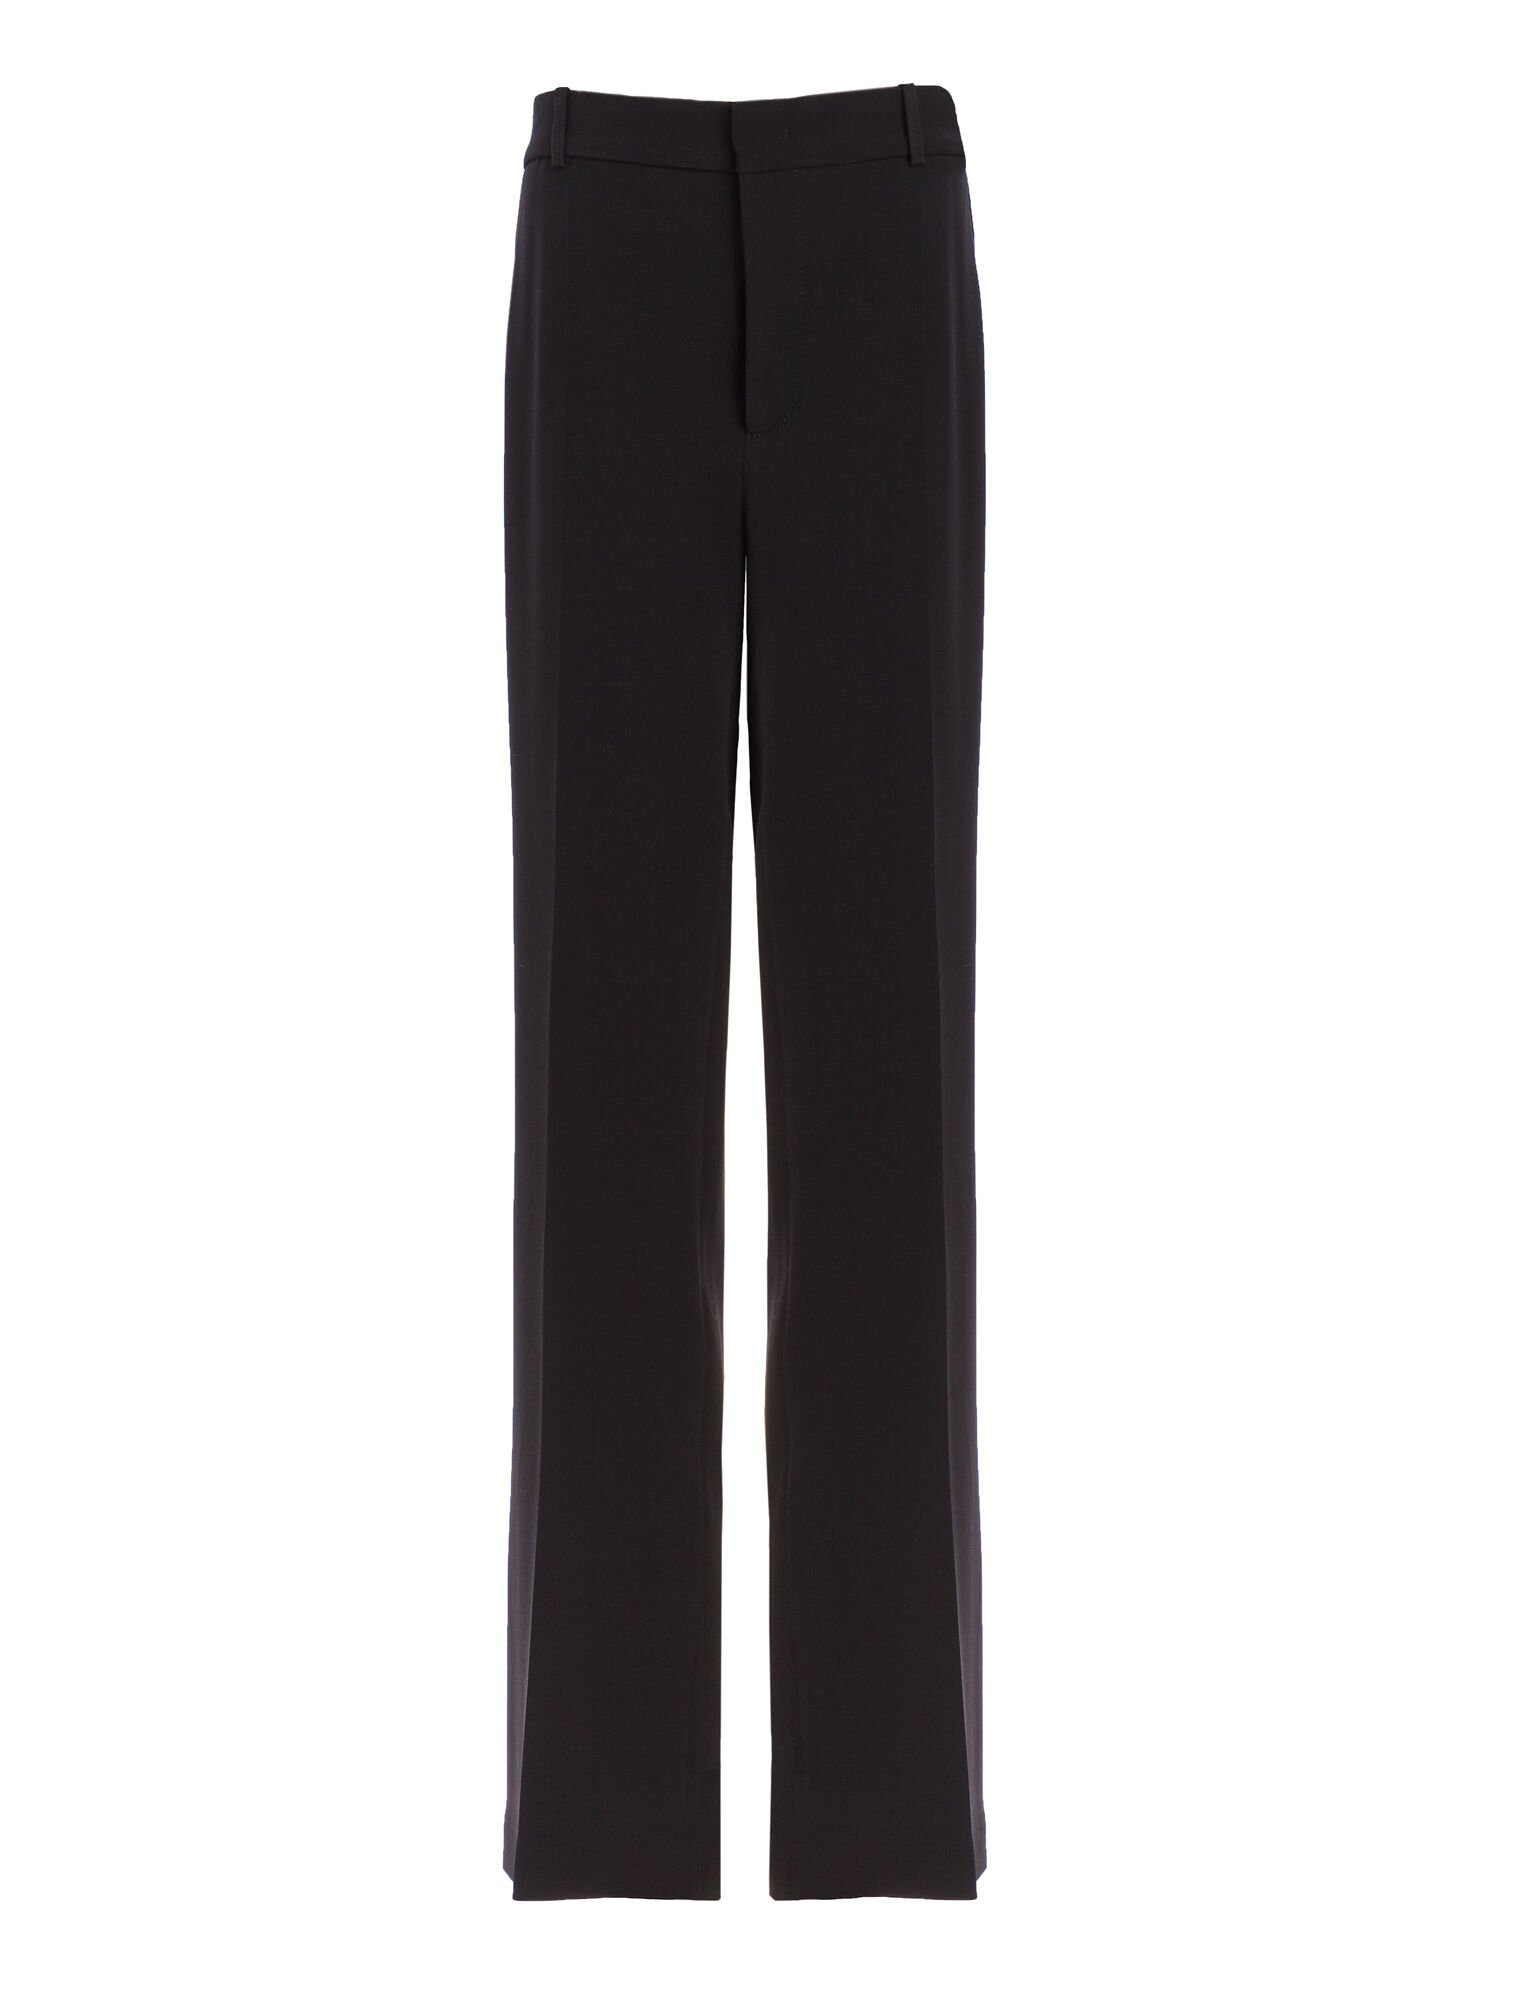 Viscose Cady Ferdy Trousers, in BLACK, large   on Joseph